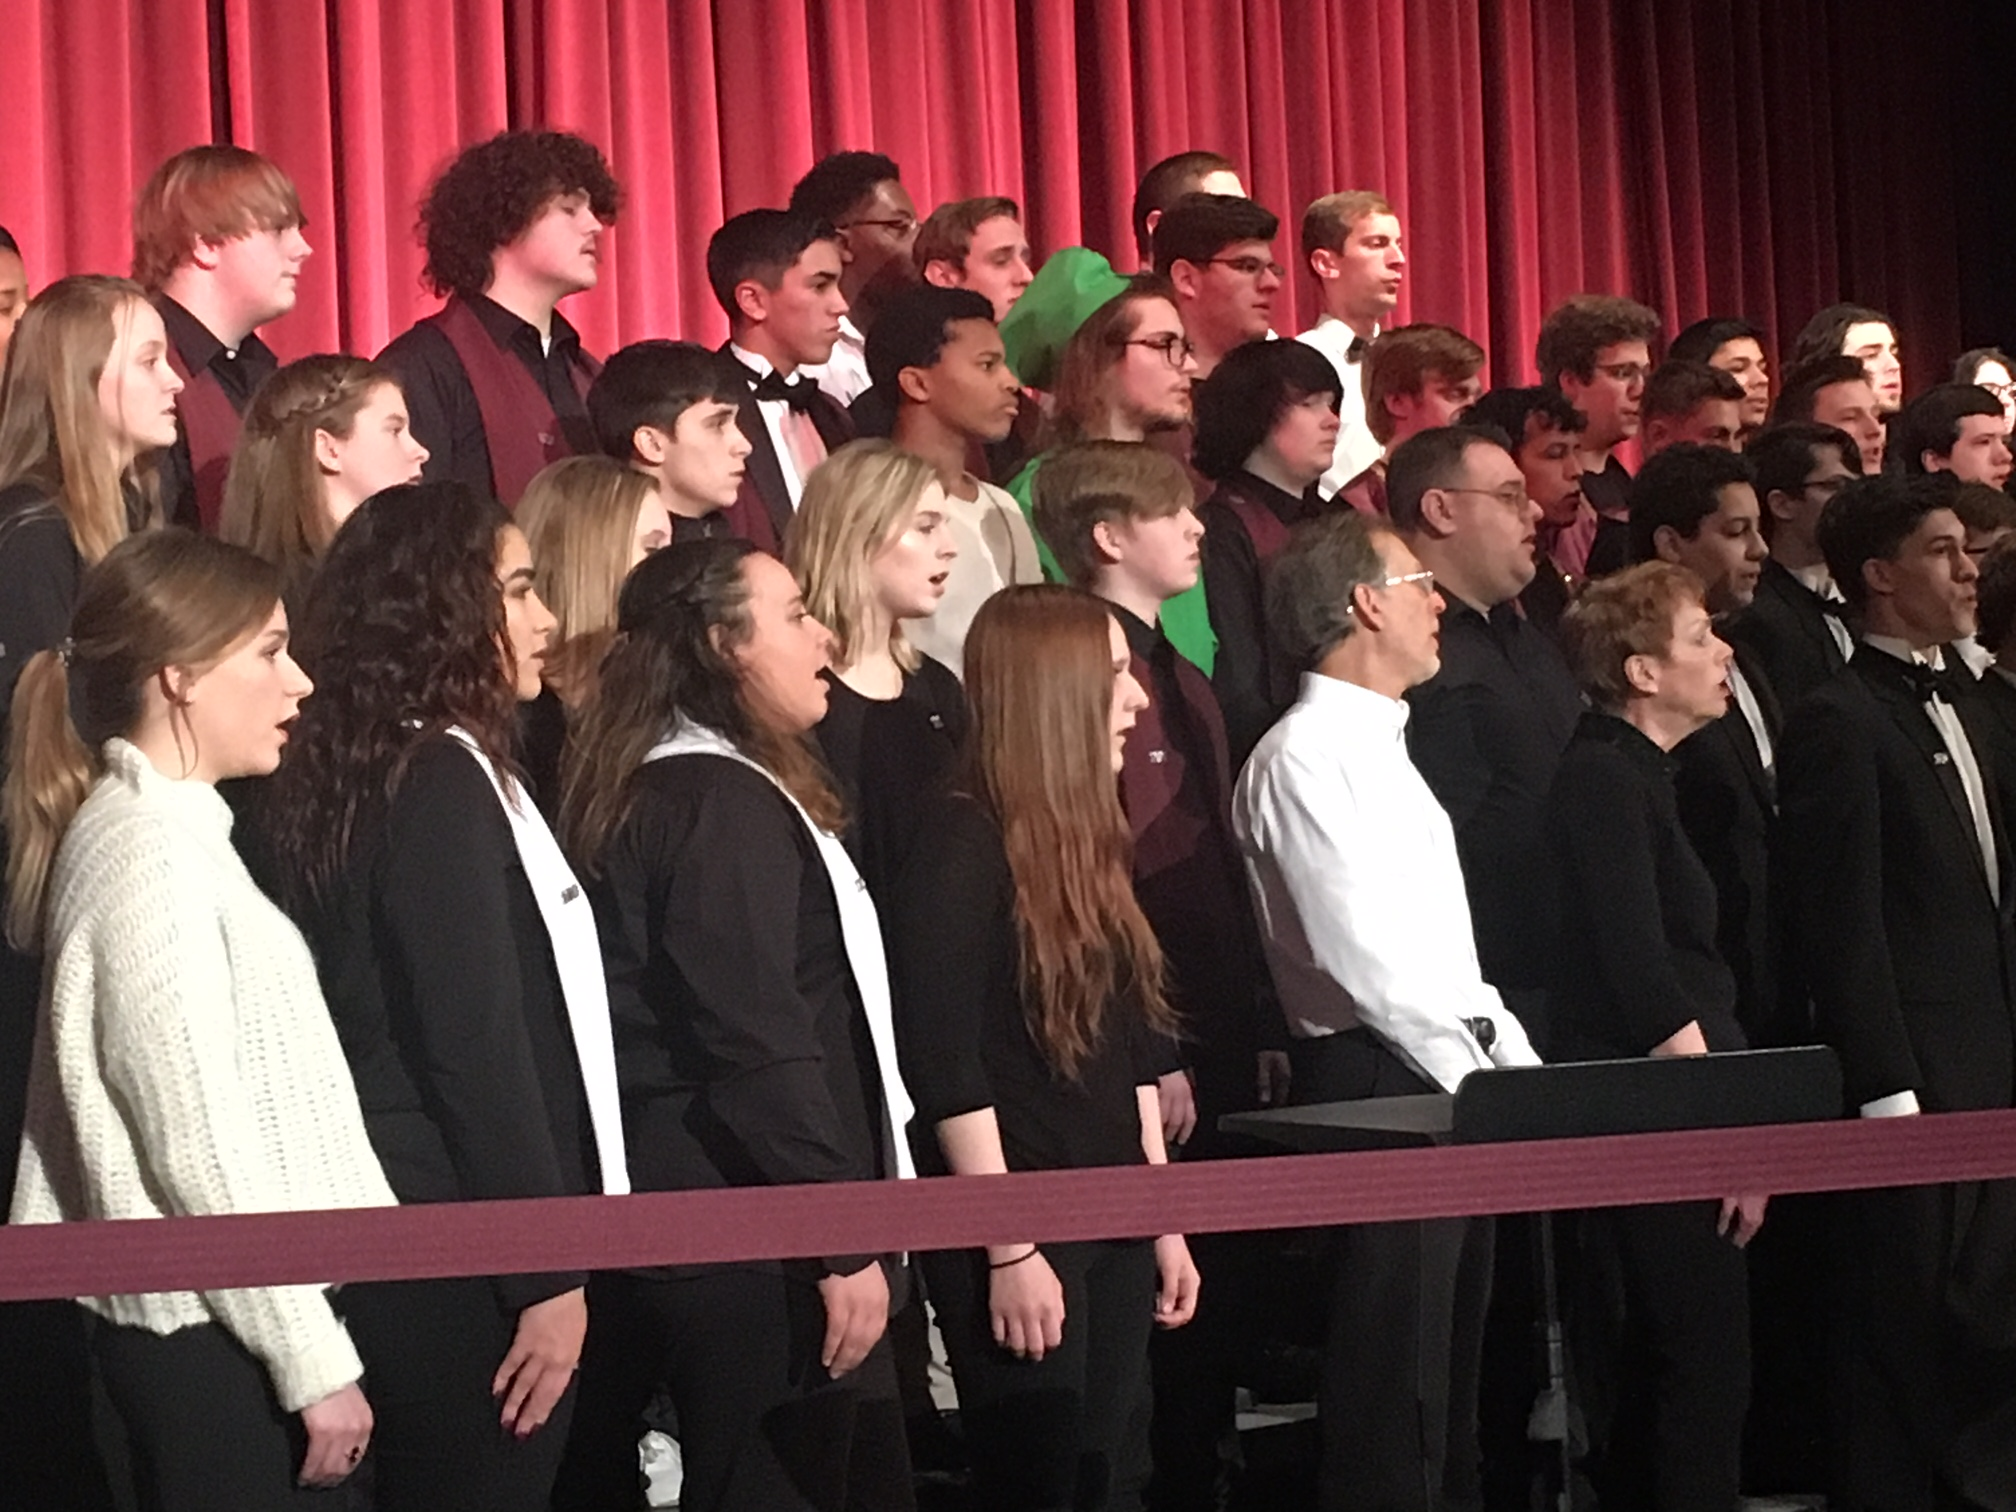 More than 40 alumni sang alongside current choir members